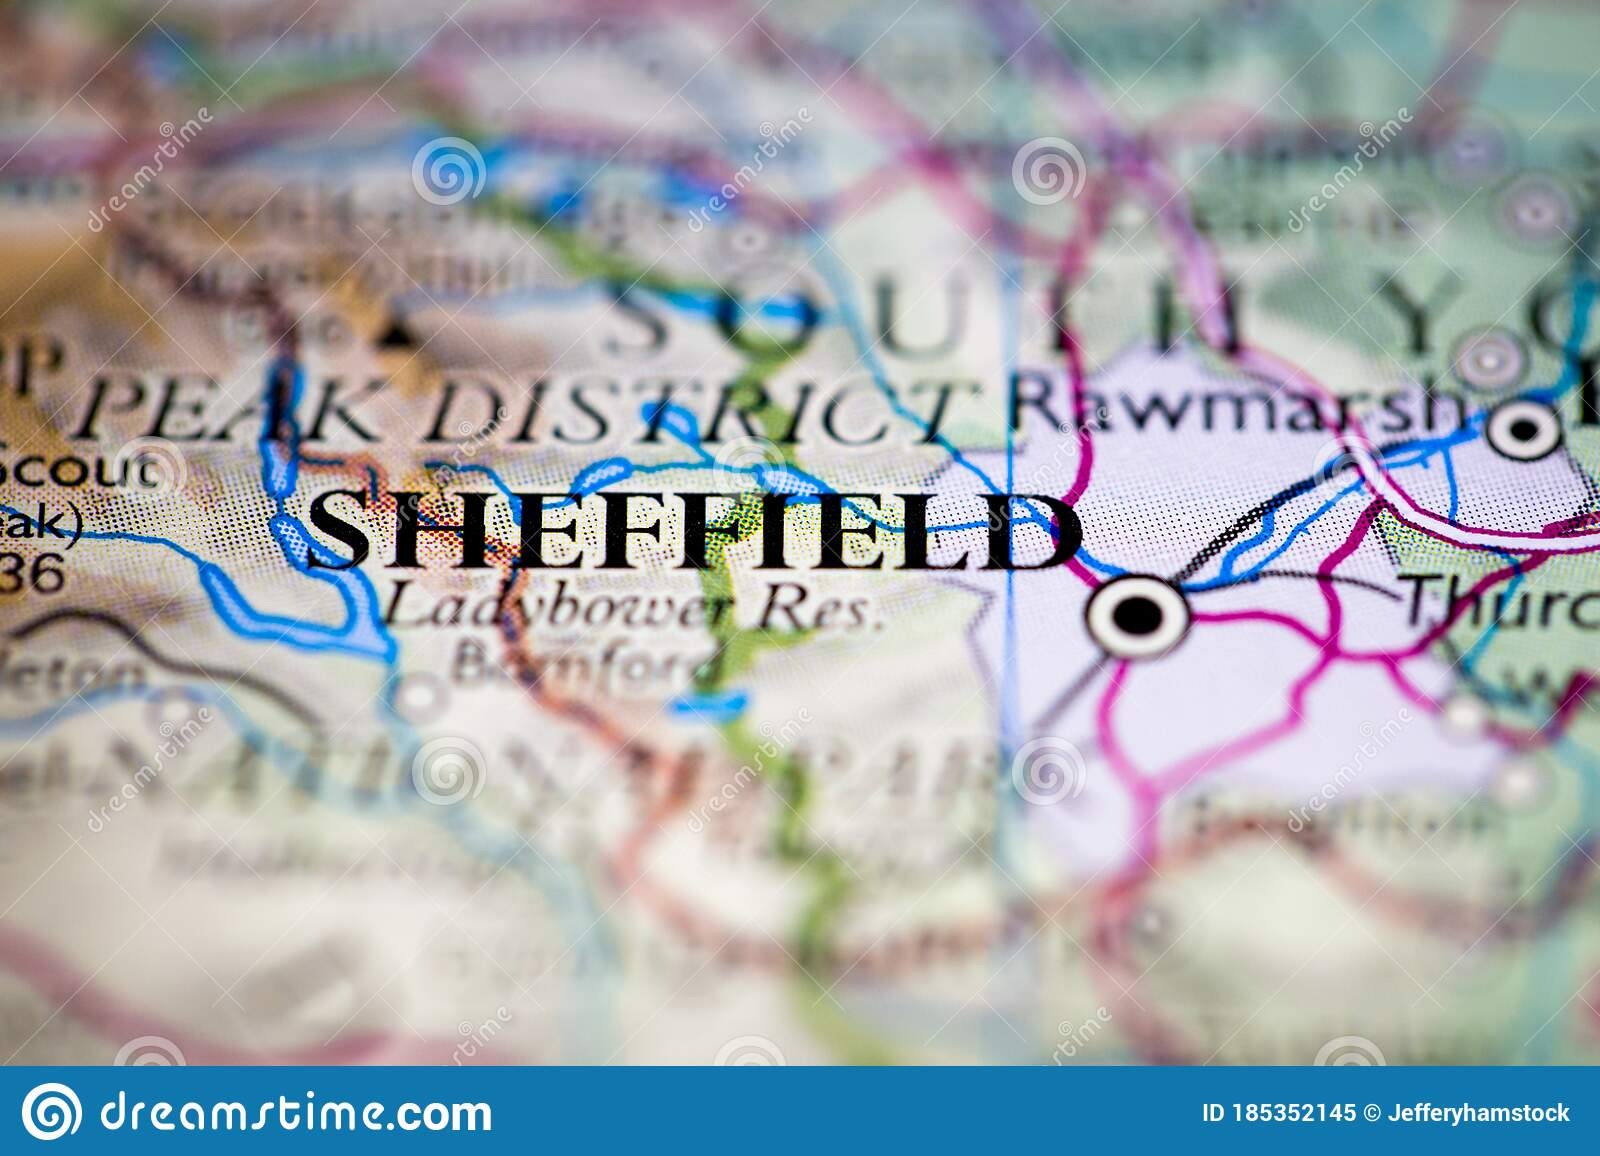 Picture of: Shallow Depth Of Field Focus On Geographical Map Location Of Sheffield City England United Kingdom Great Britain Europe Continent Stock Image Image Of Globe Guide 185352145